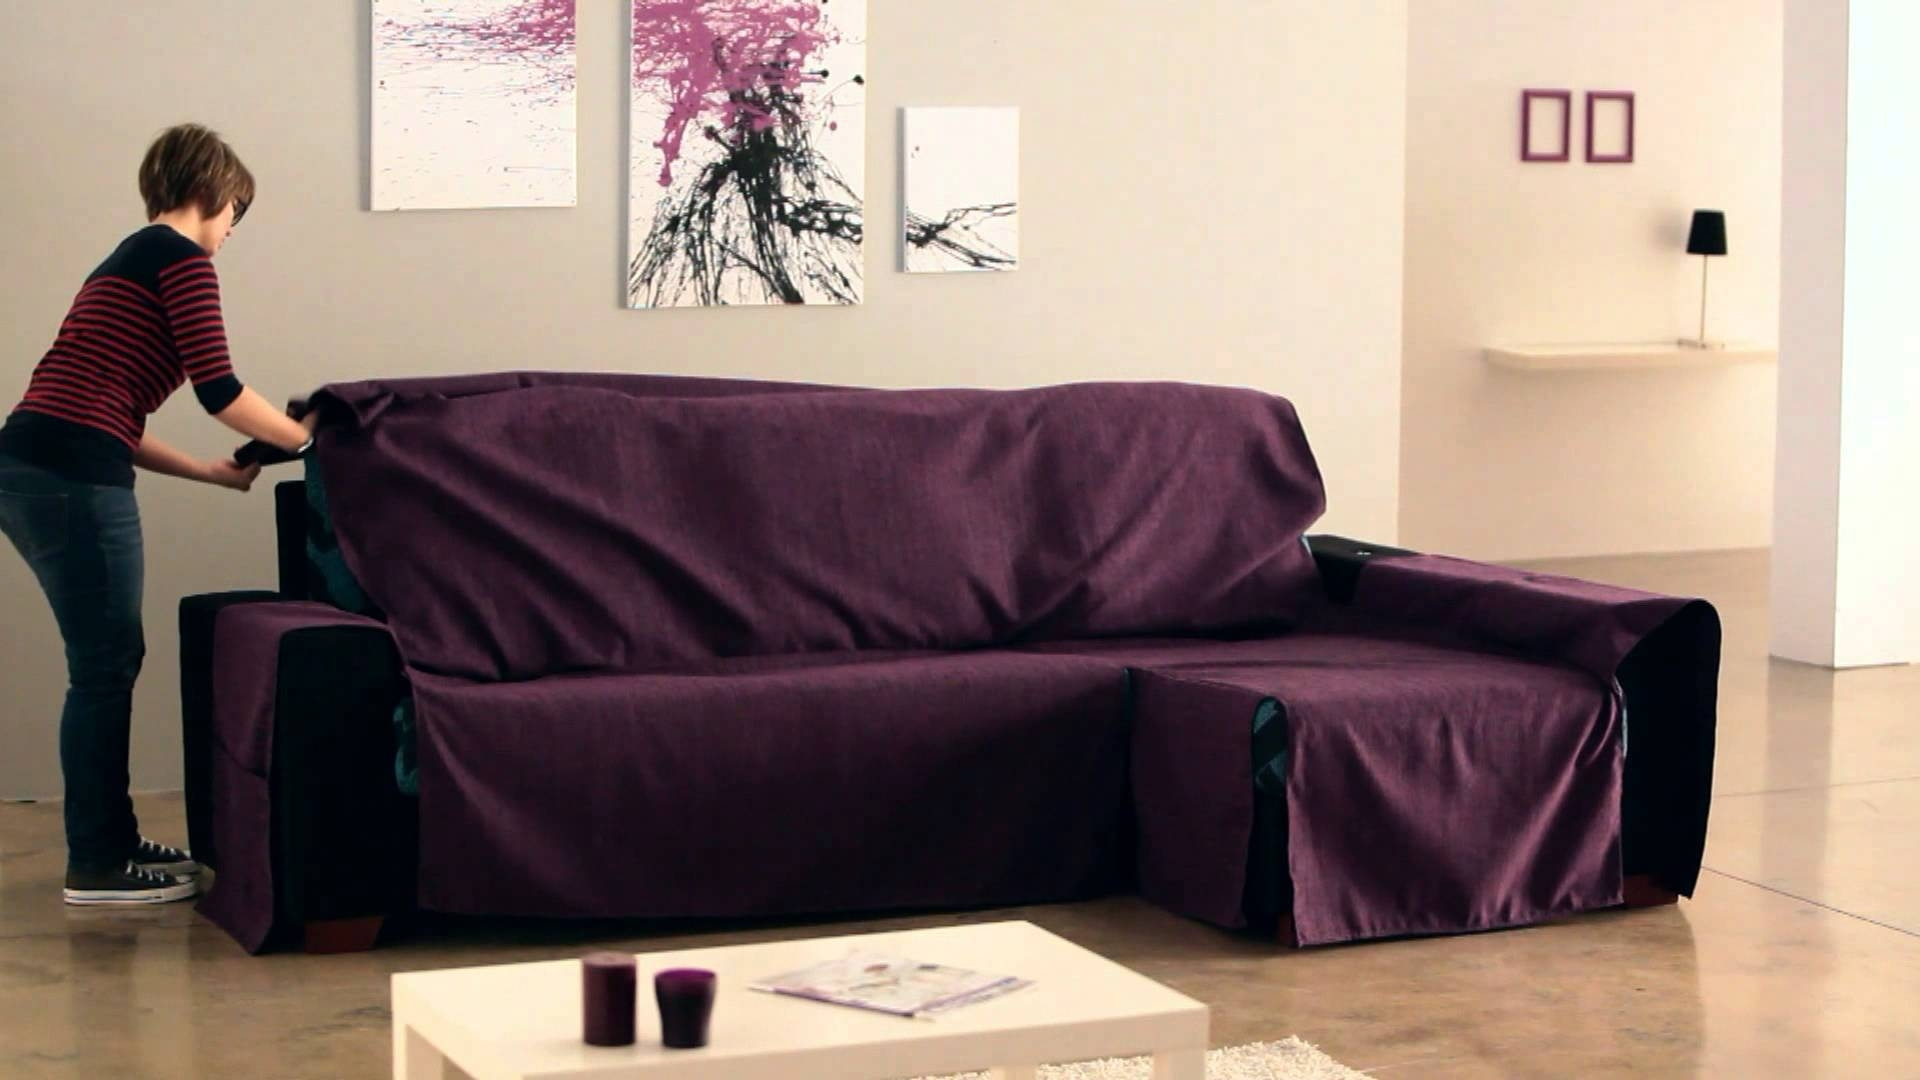 Chaise Covers In 2017 How To Put An Universal Chaise Sofa Covers – Youtube (View 3 of 15)